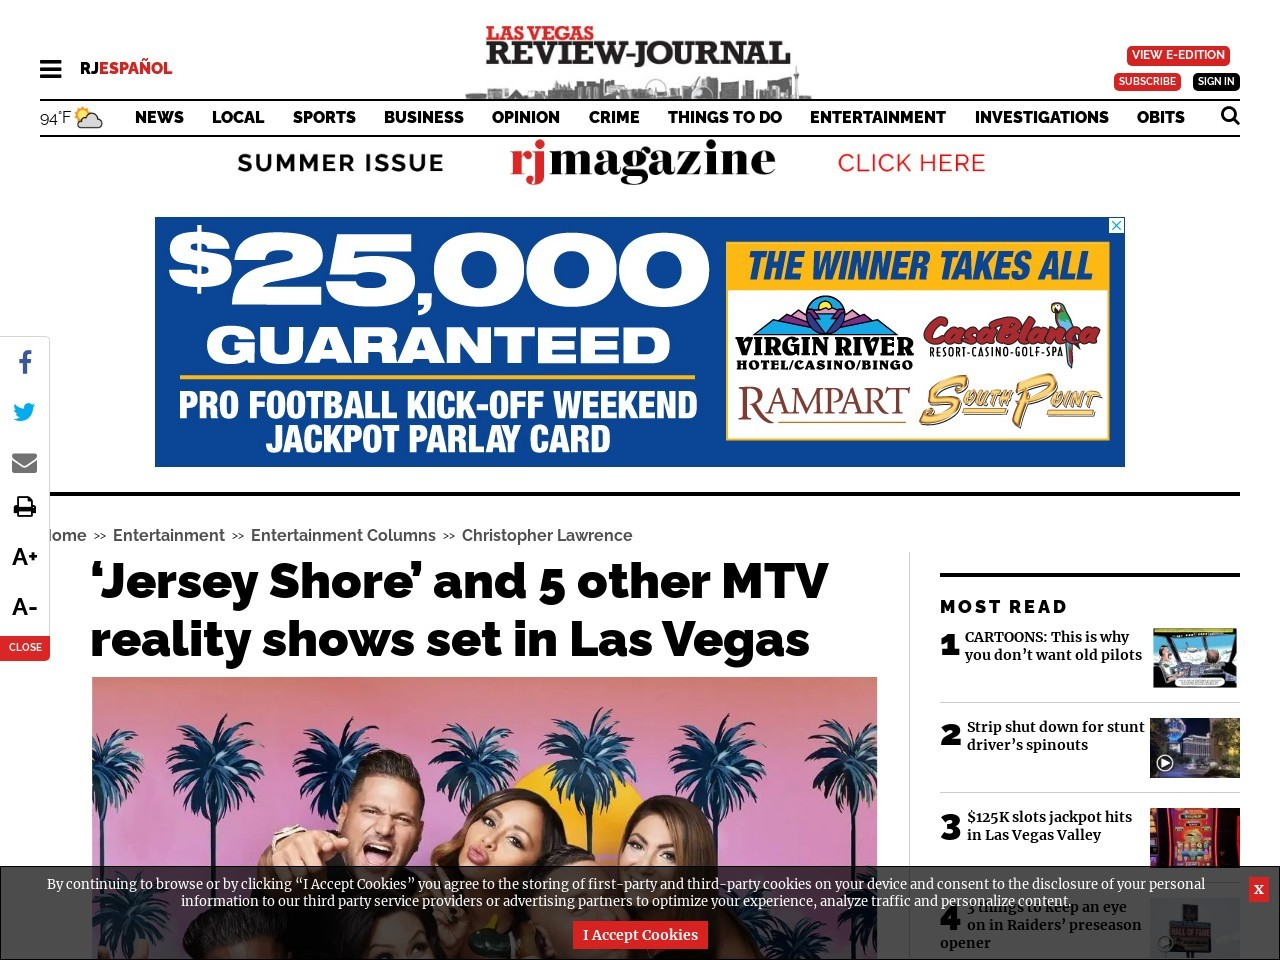 'Jersey Shore' and 5 other MTV reality shows set in Las Vegas